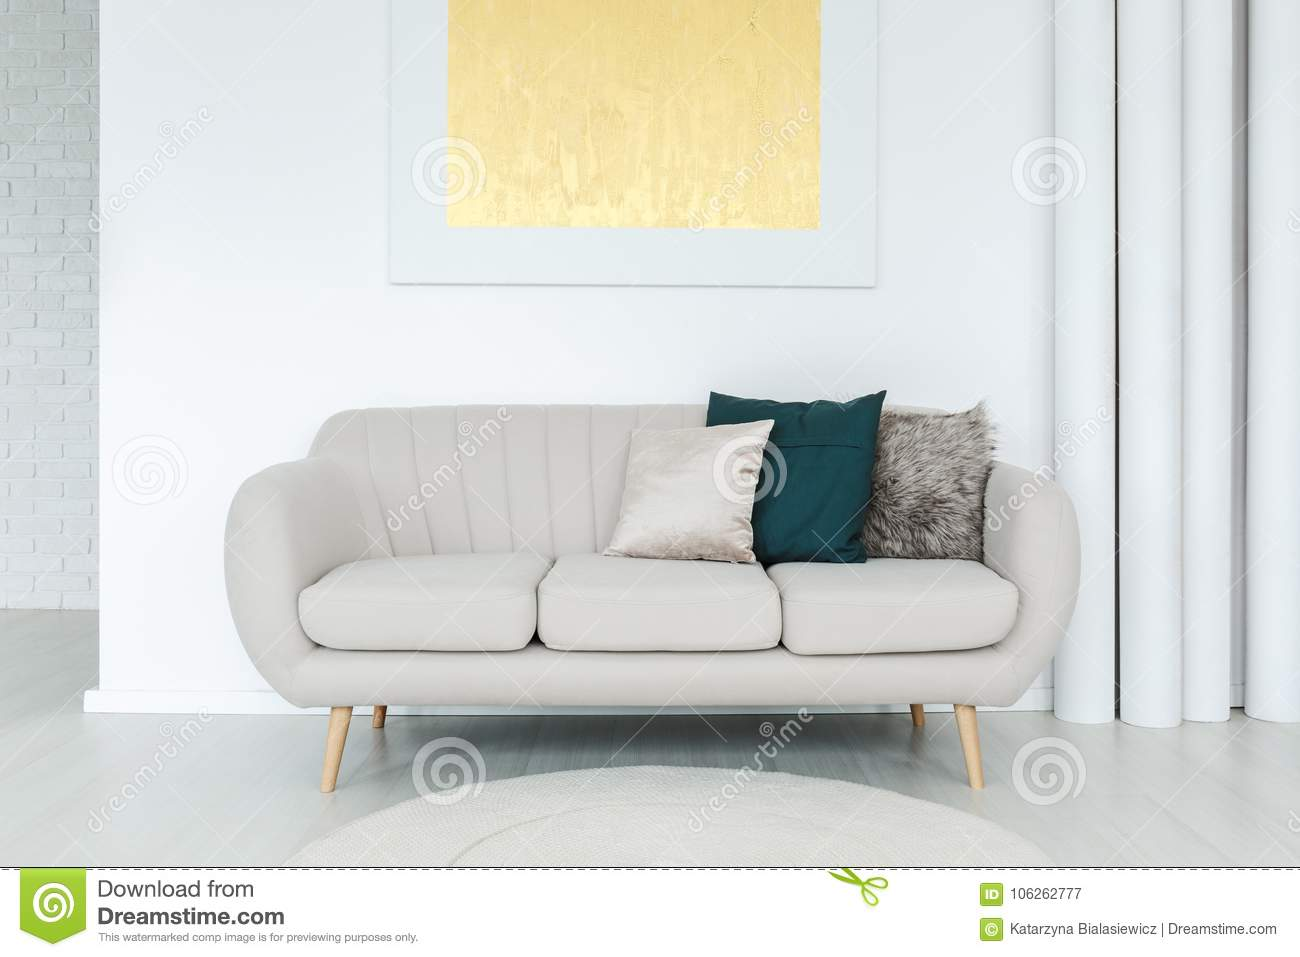 Cool Bright Couch With Pillows Stock Image Image Of Home 106262777 Unemploymentrelief Wooden Chair Designs For Living Room Unemploymentrelieforg